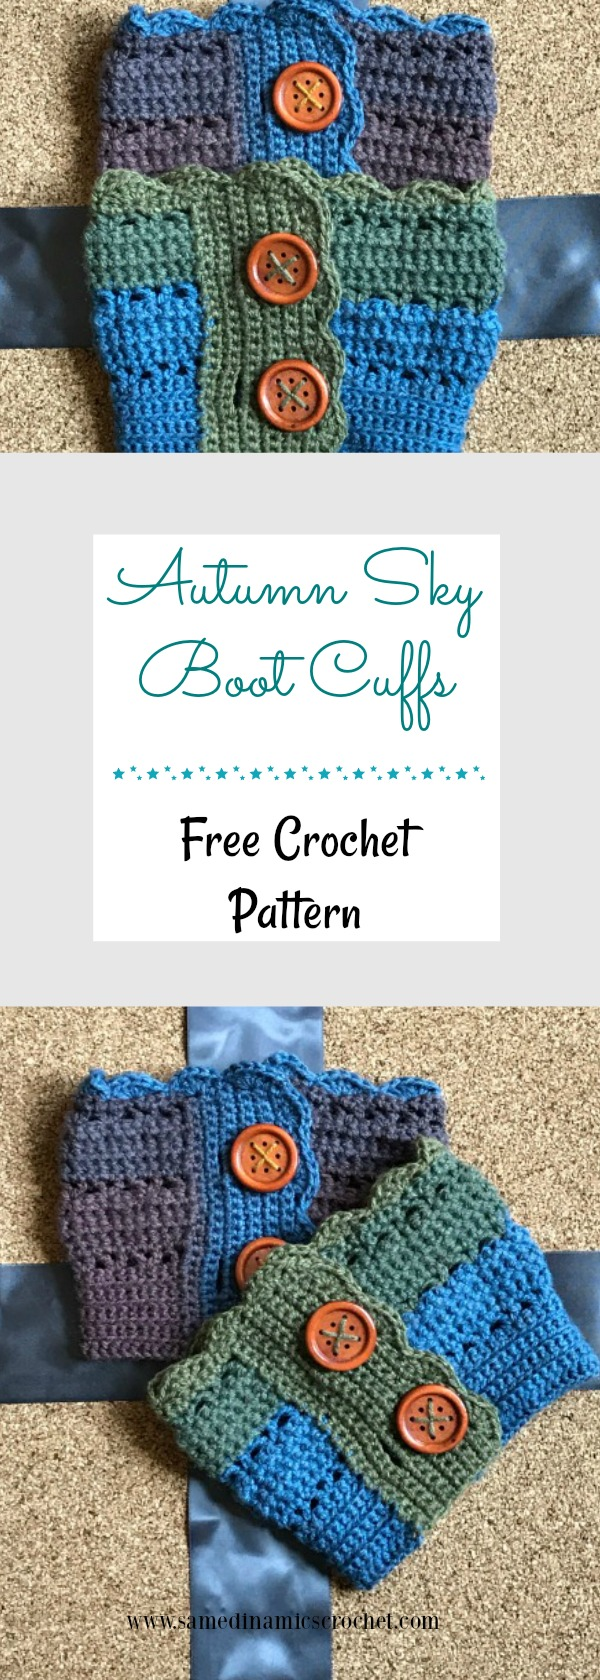 The Autumn Sky Boot Cuffs is the latest installment in the Autumn Sky series. These boot cuffs are meant to complete and complement the Autumn Sky Cow and Hat.